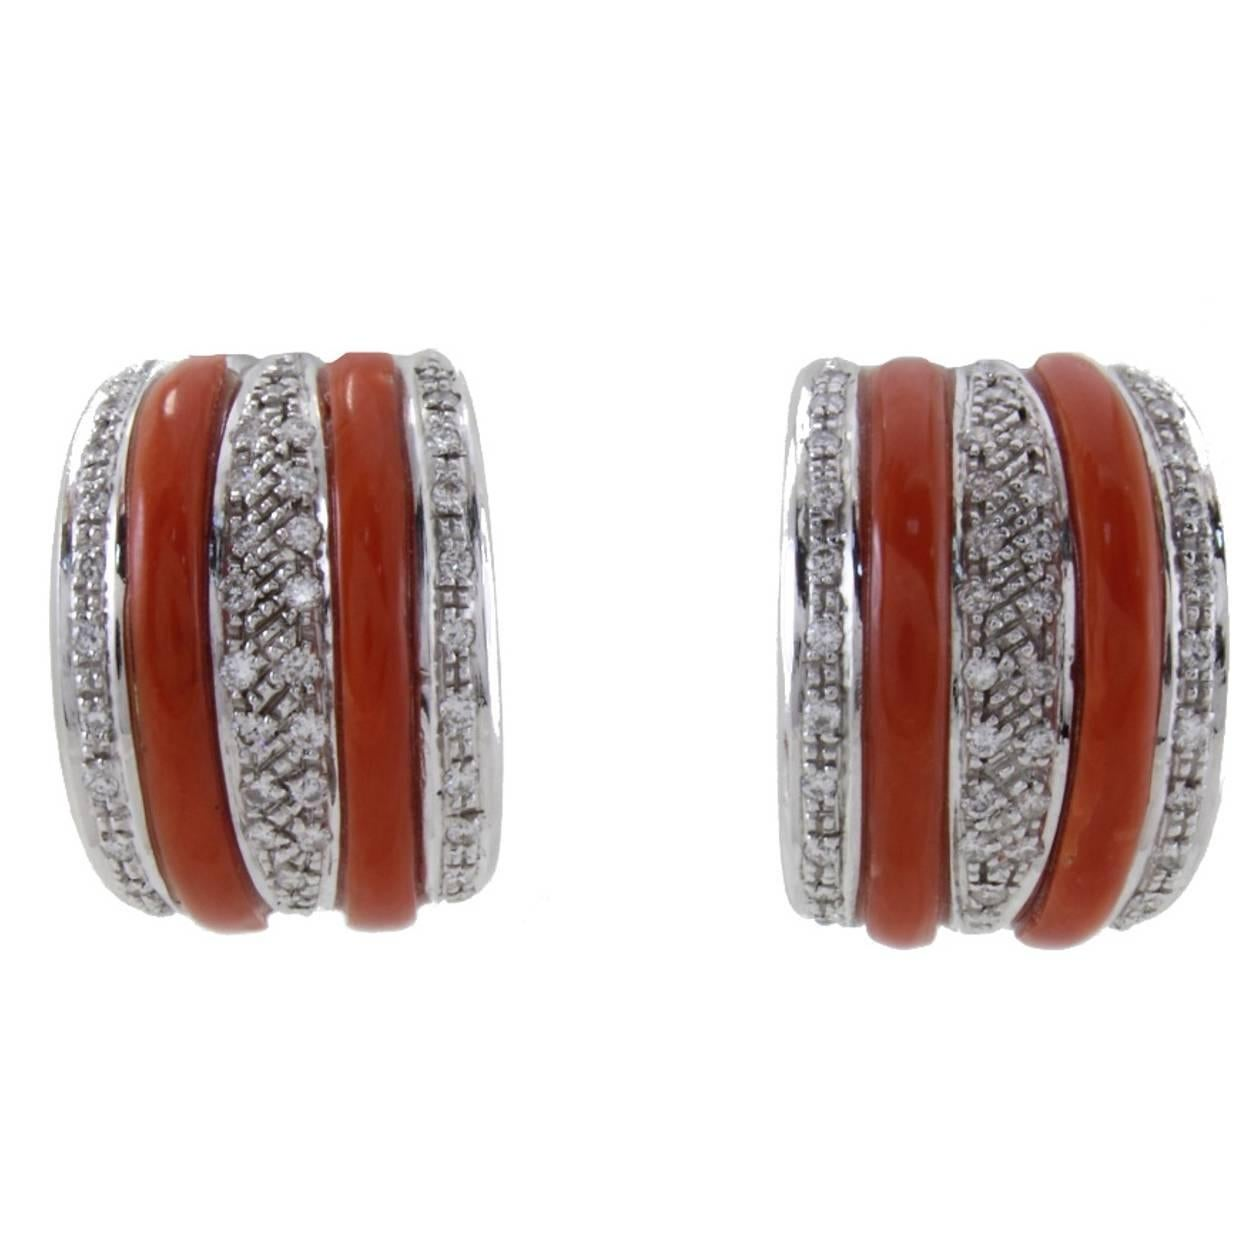 White Diamonds, Red Corals,White Gold Clip-on Earrings